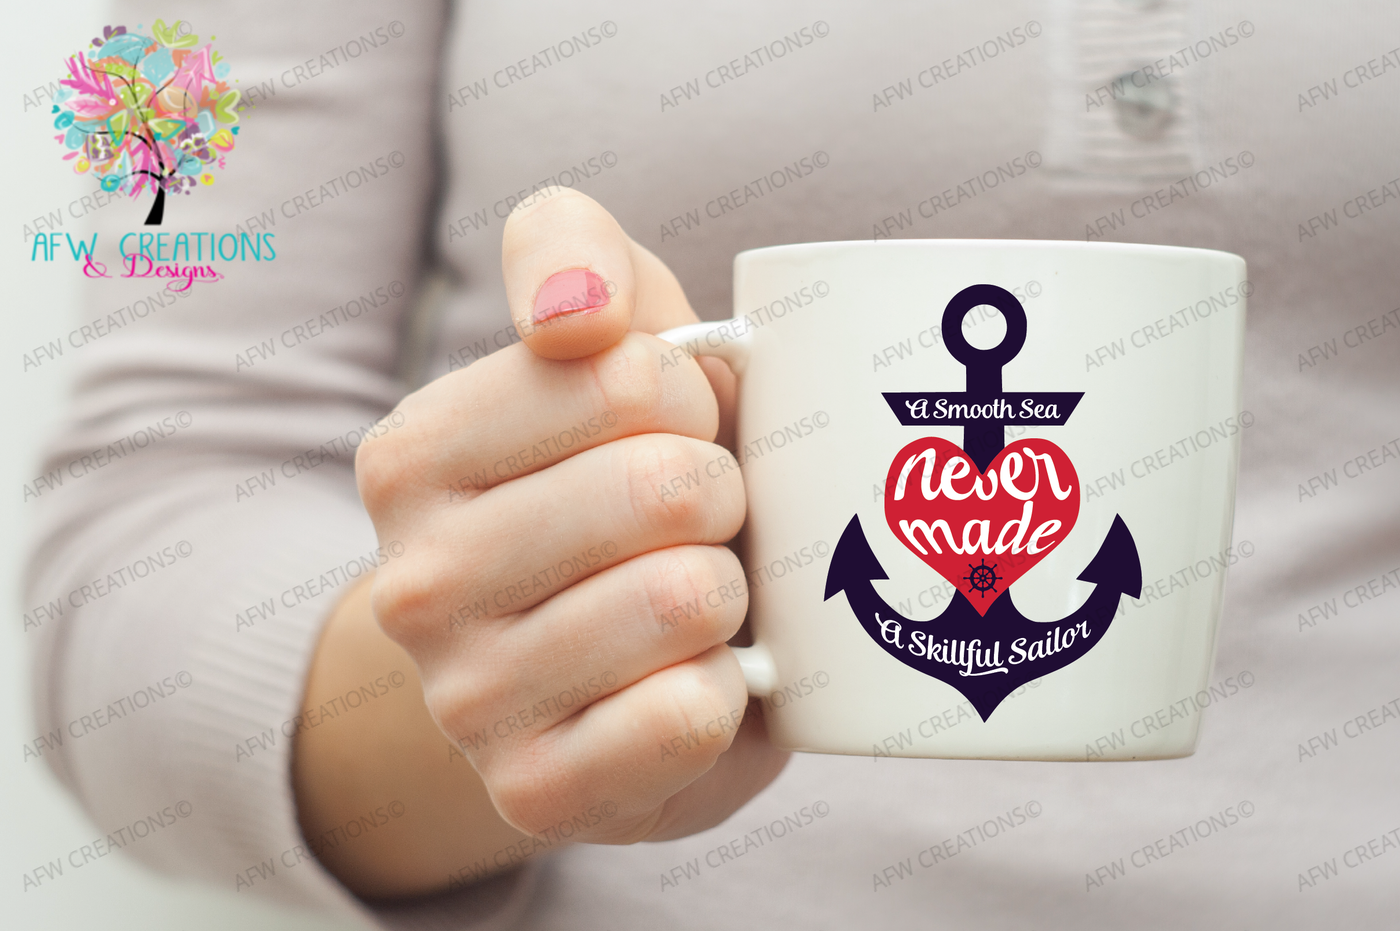 Anchor Smooth Sea Skillful Sailor Svg Dxf Eps Cut Files By